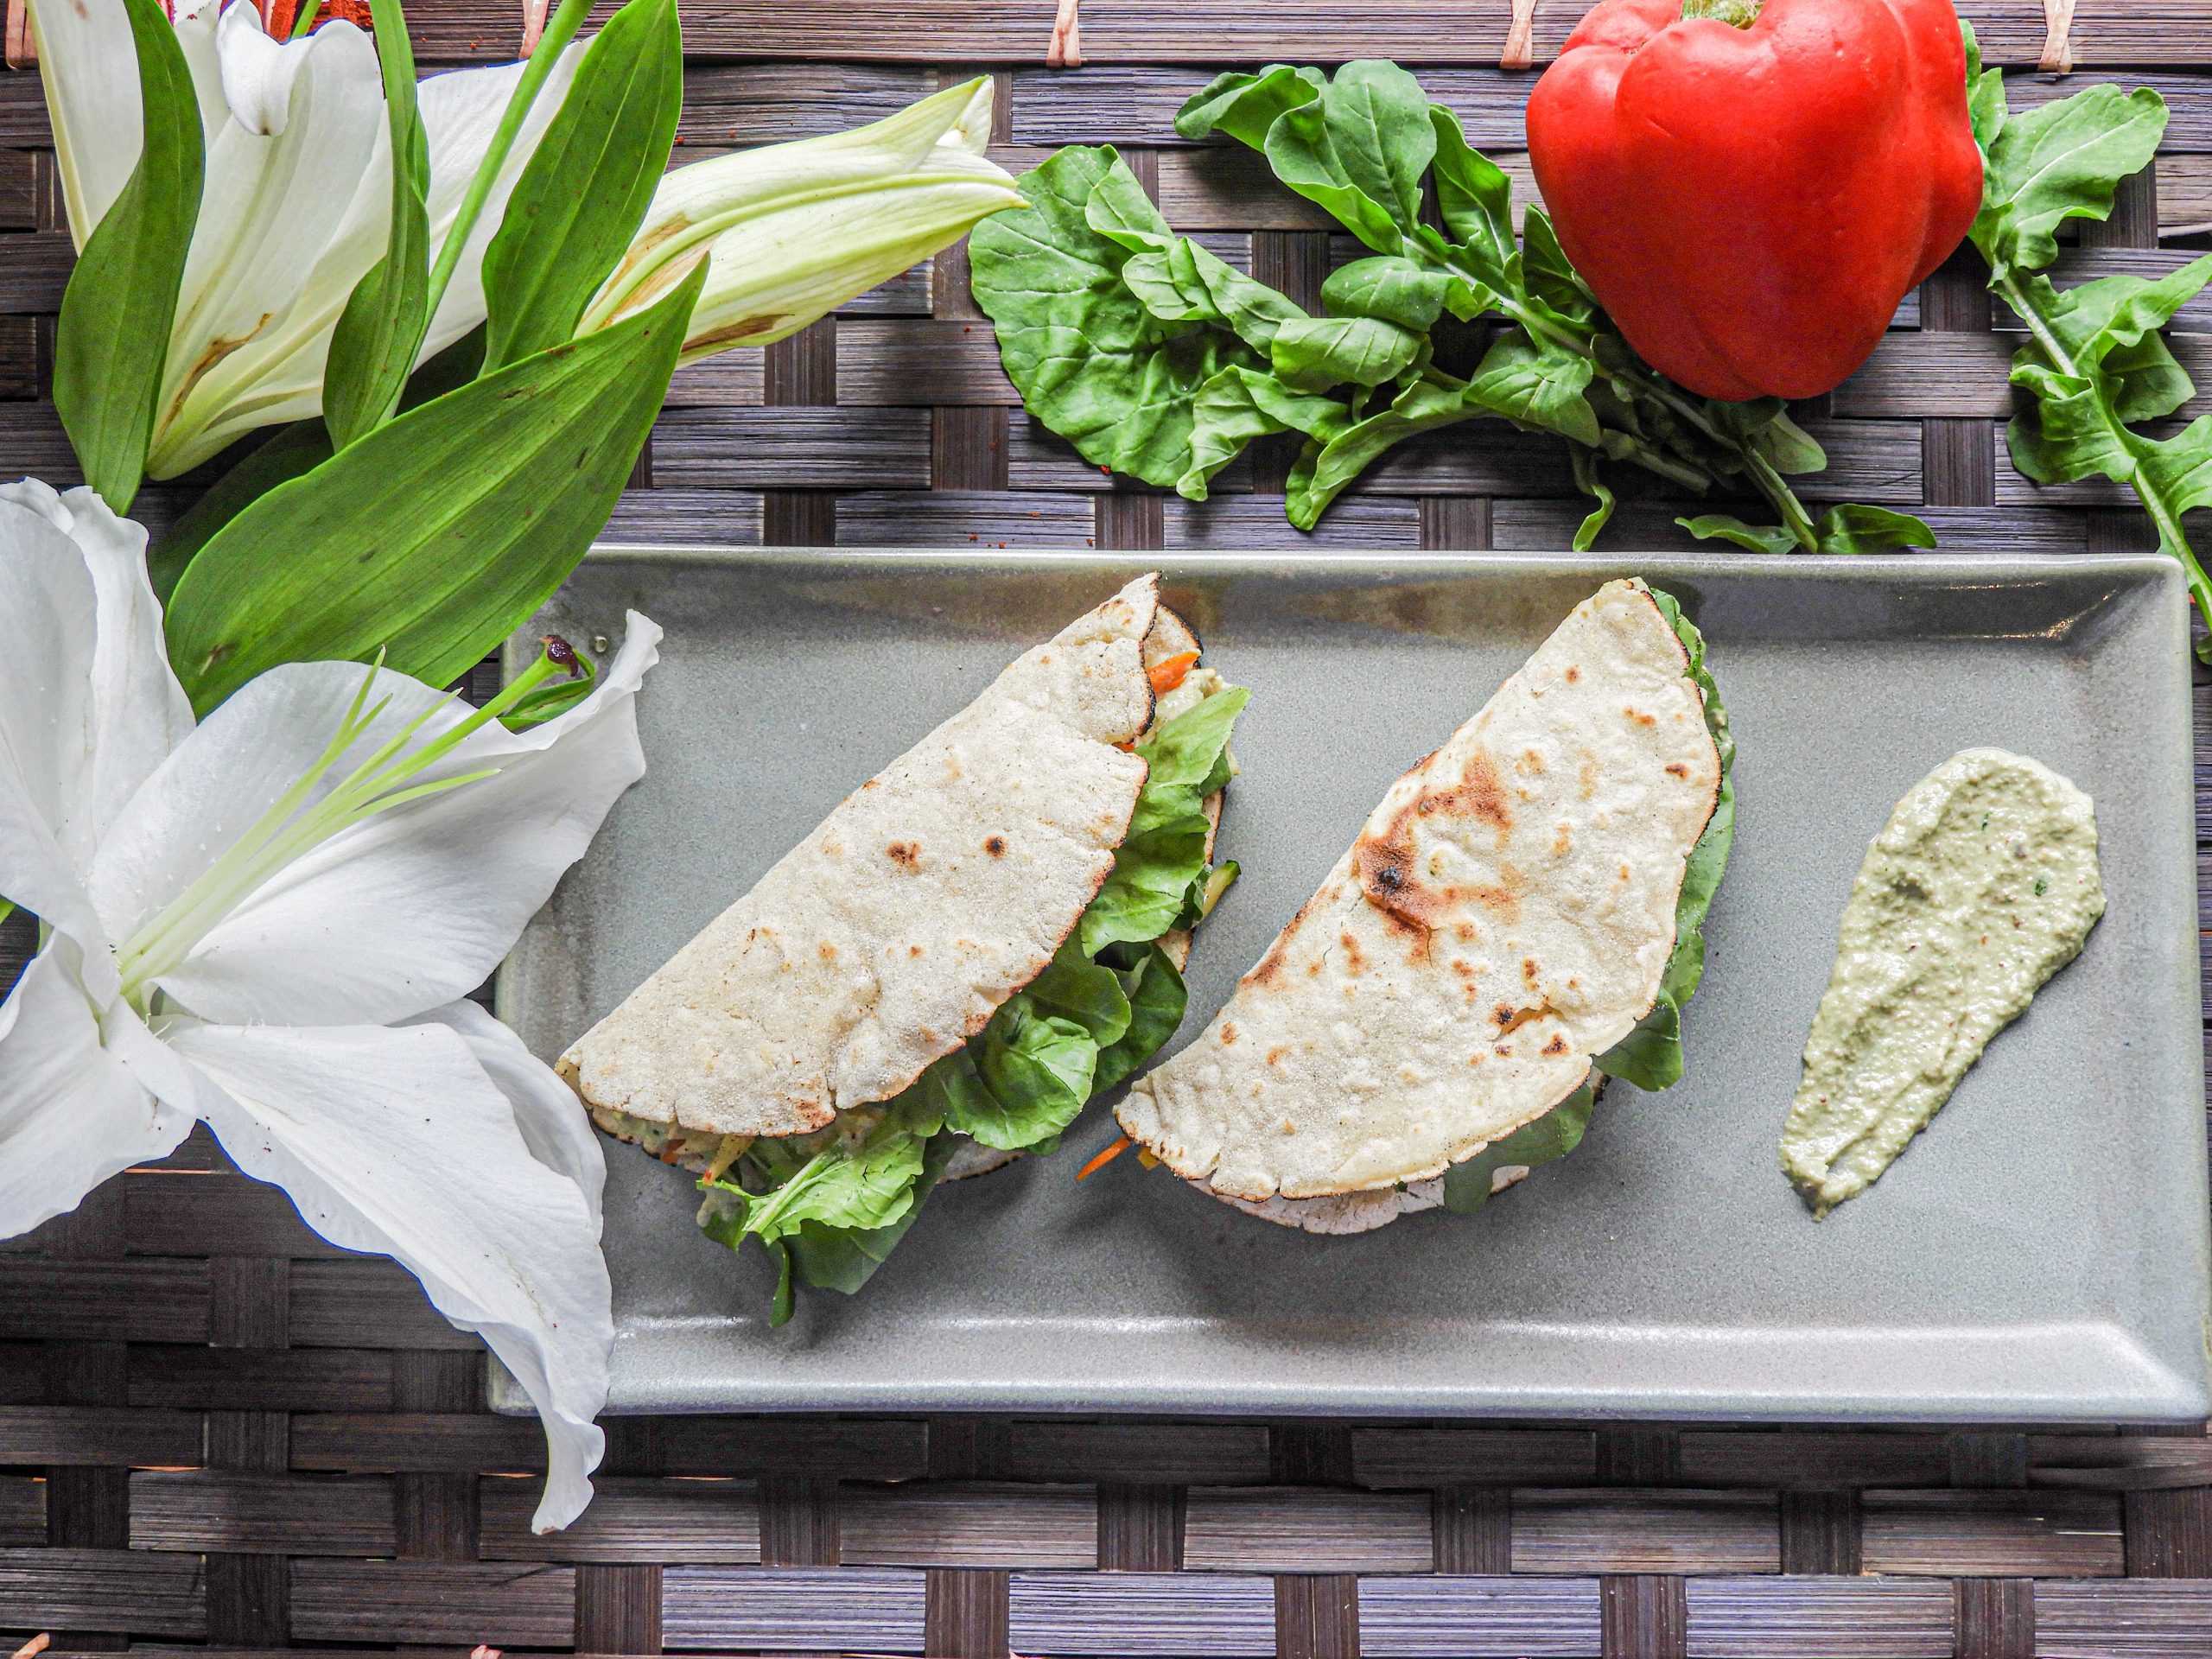 Vegetable Jawar Wrap with Pesto Sauce - Indian Cuisine at Kitchen by Nidhi